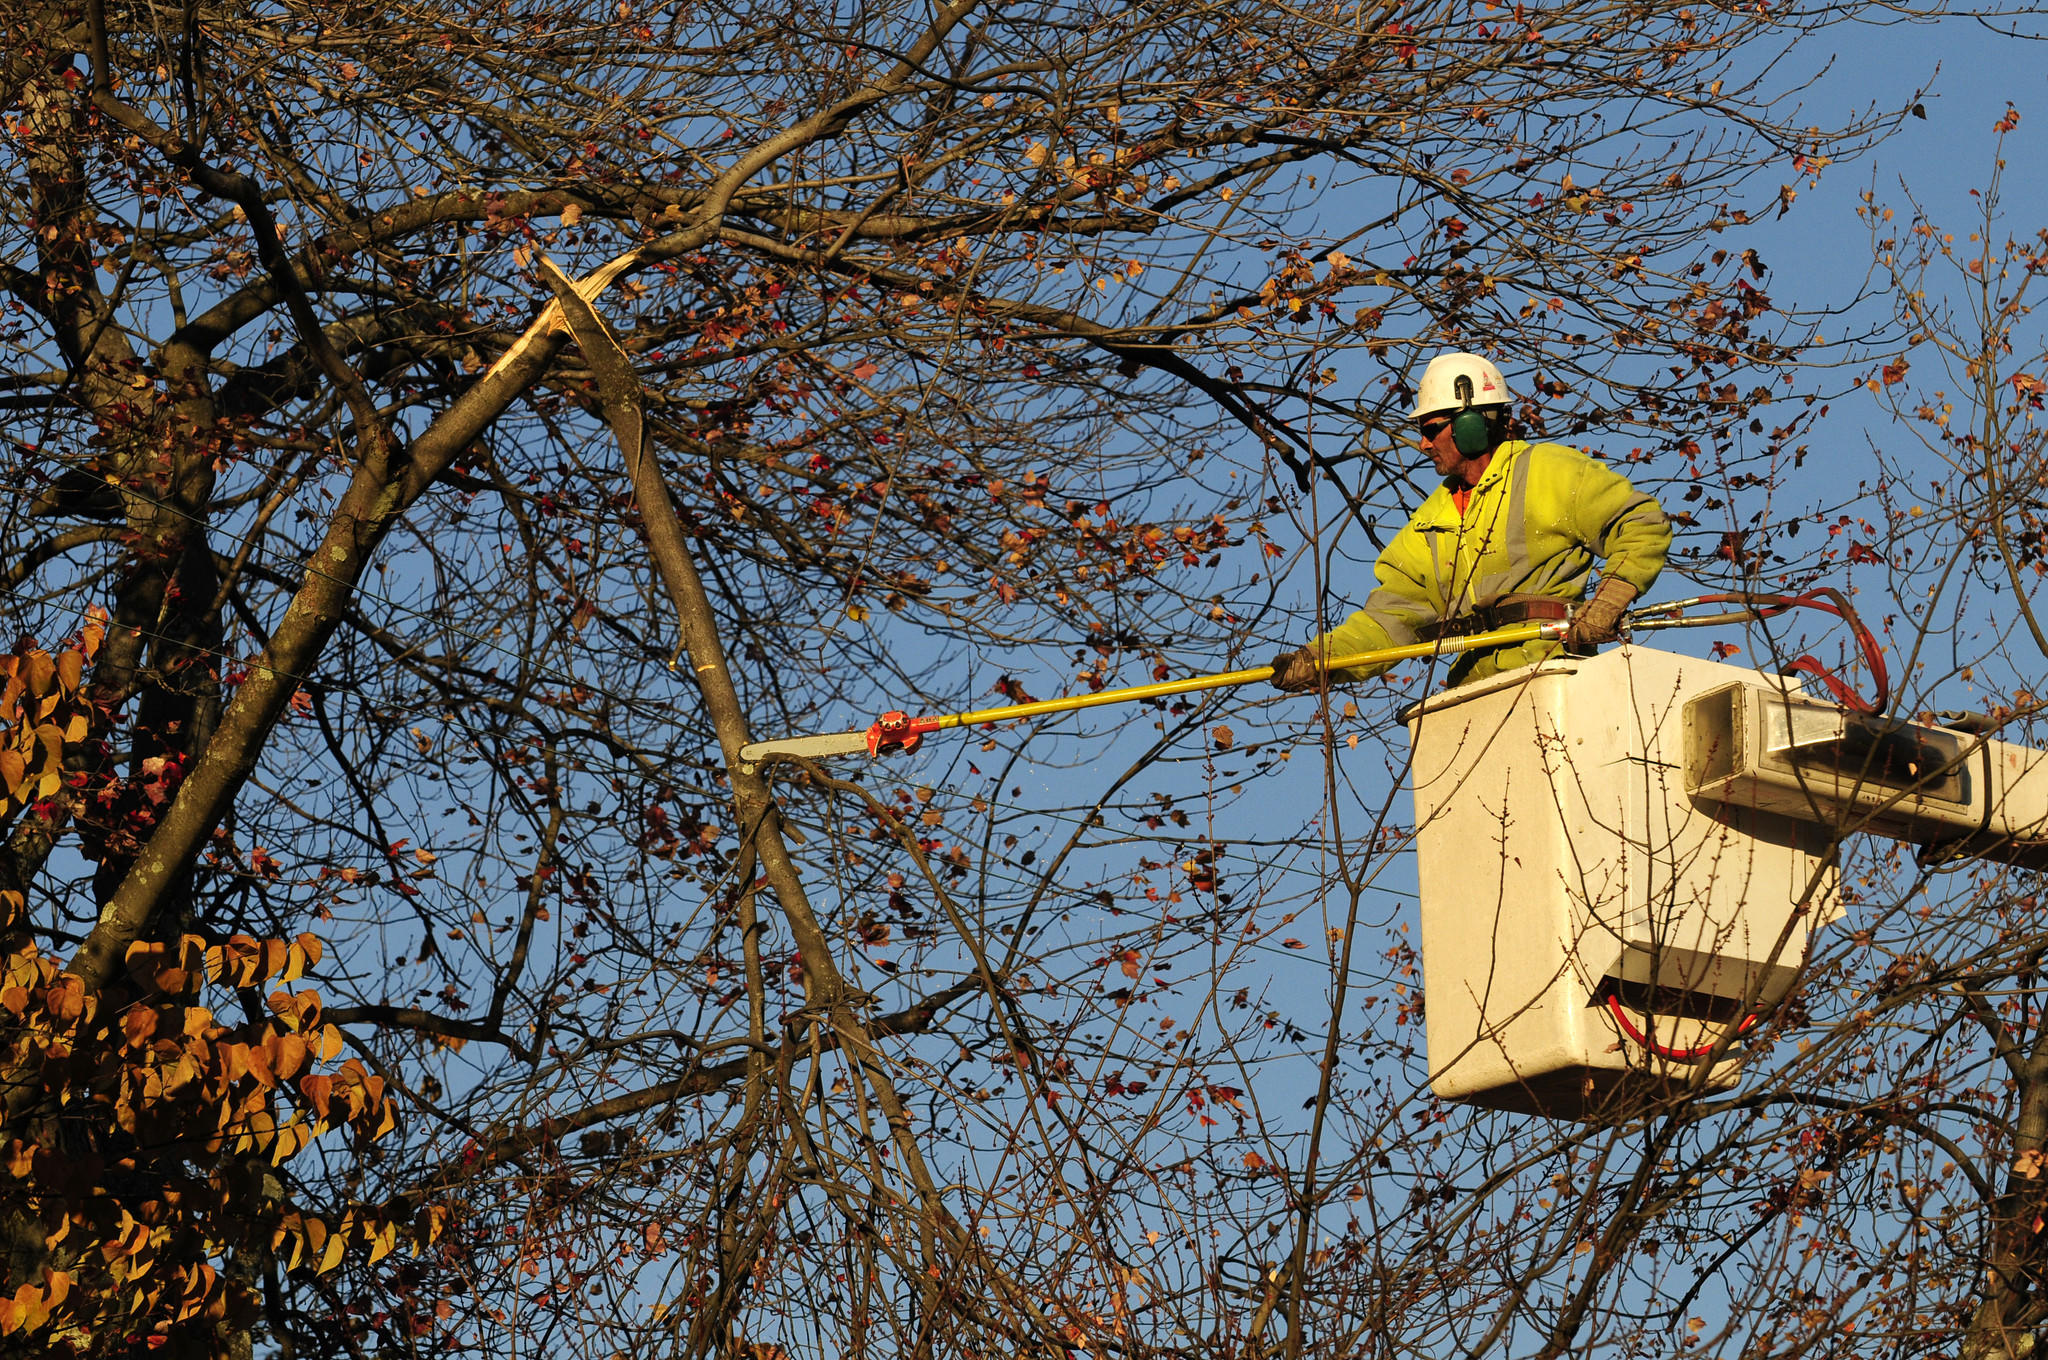 A worker from Asplundh Tree Expert Co. trims a large tree hanging over power lines in Manchester following the October 2011 snowstorm.